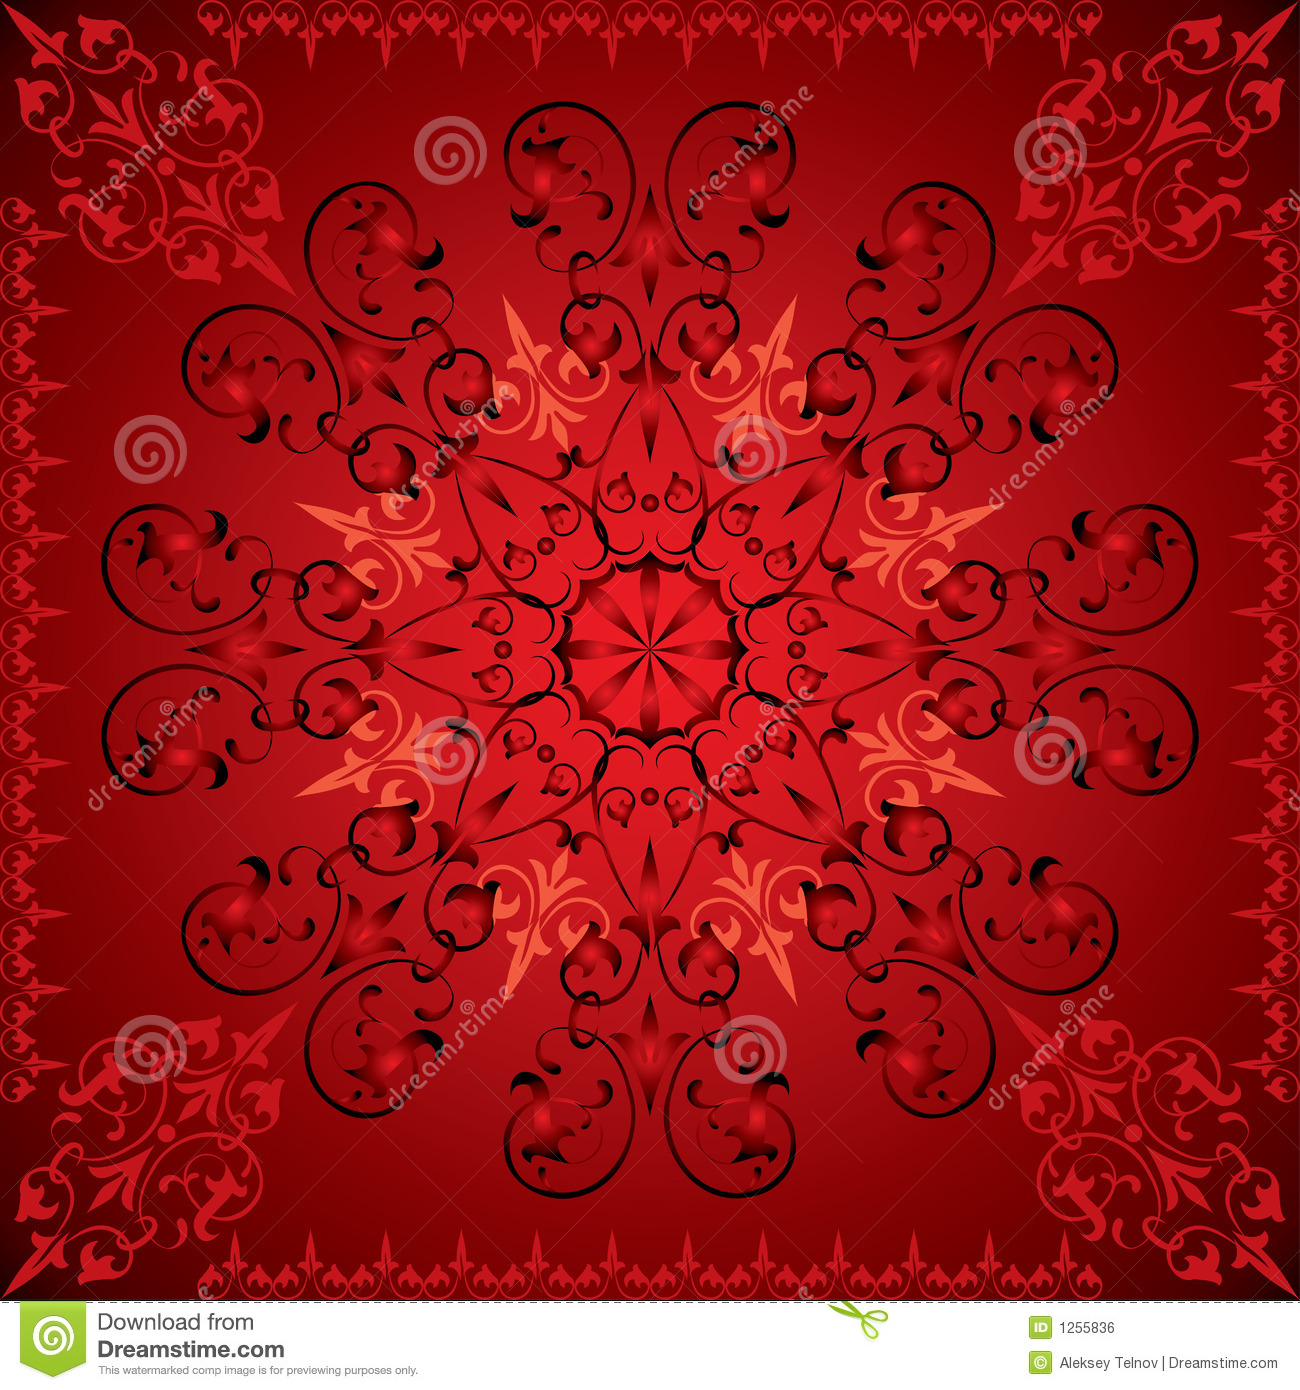 Abstract Flower Background With Decoration Elements For: Abstract Floral Background, Elements For Design, Vector